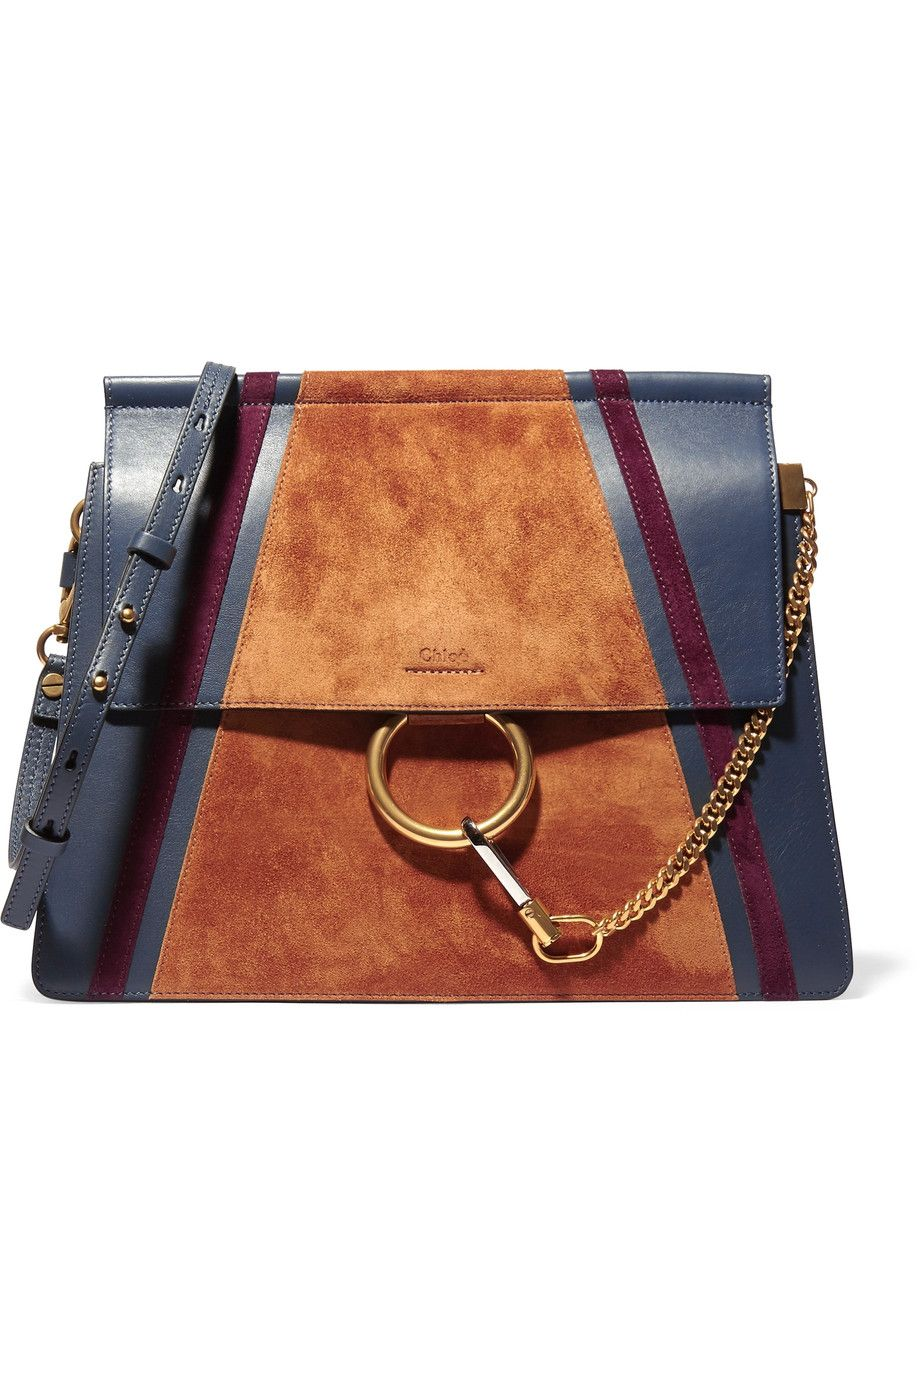 Enjoy Cheap Online Chloé caramel brown faye patent and leather shoulder bag Purchase Your Favorite 2iRCAlhjnU